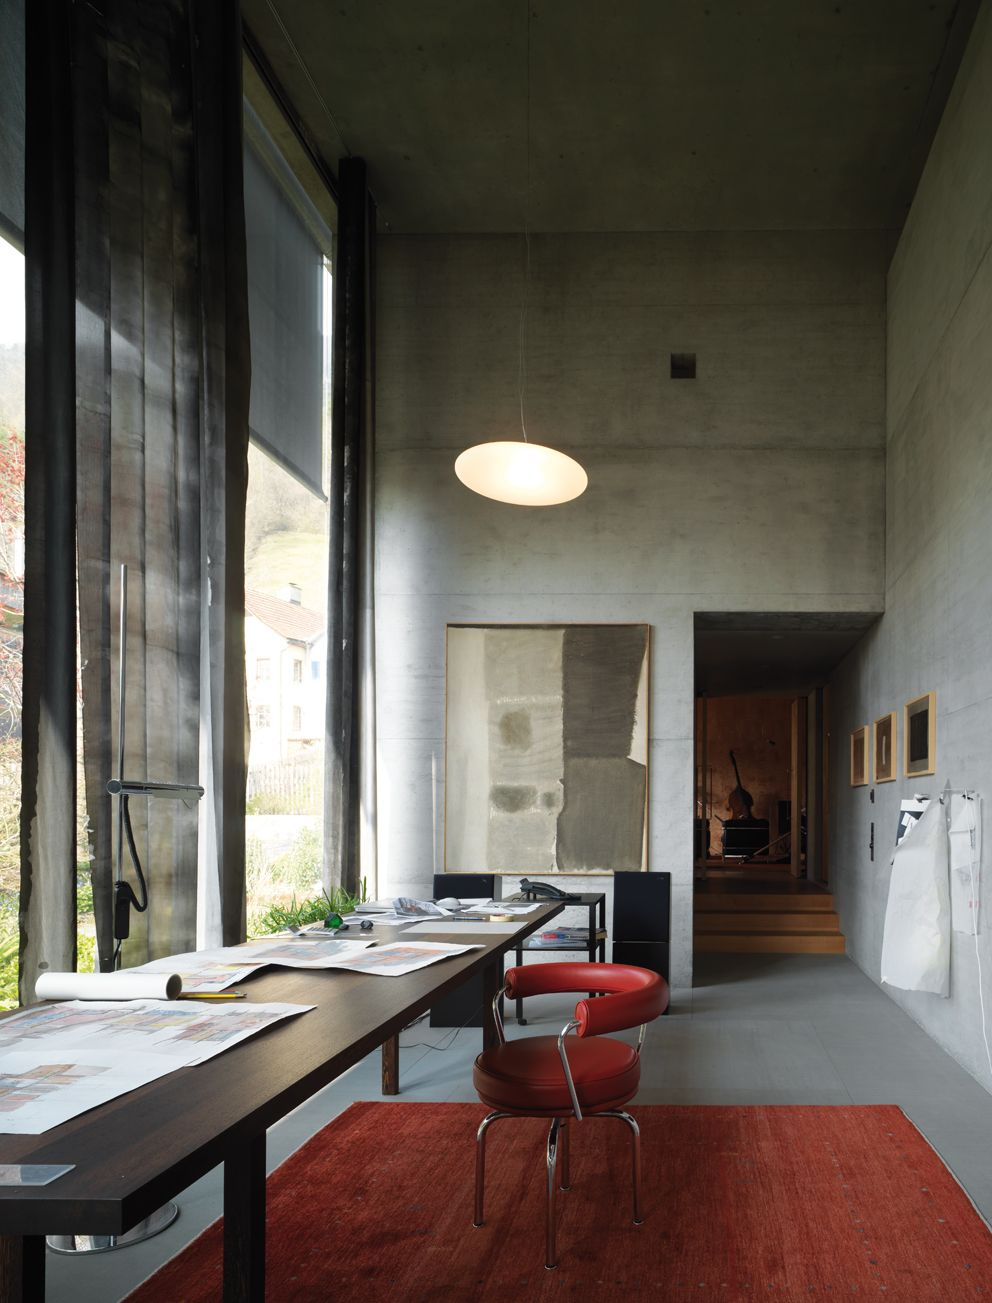 Residential home for the elderly, by Peter Zumthor Peter